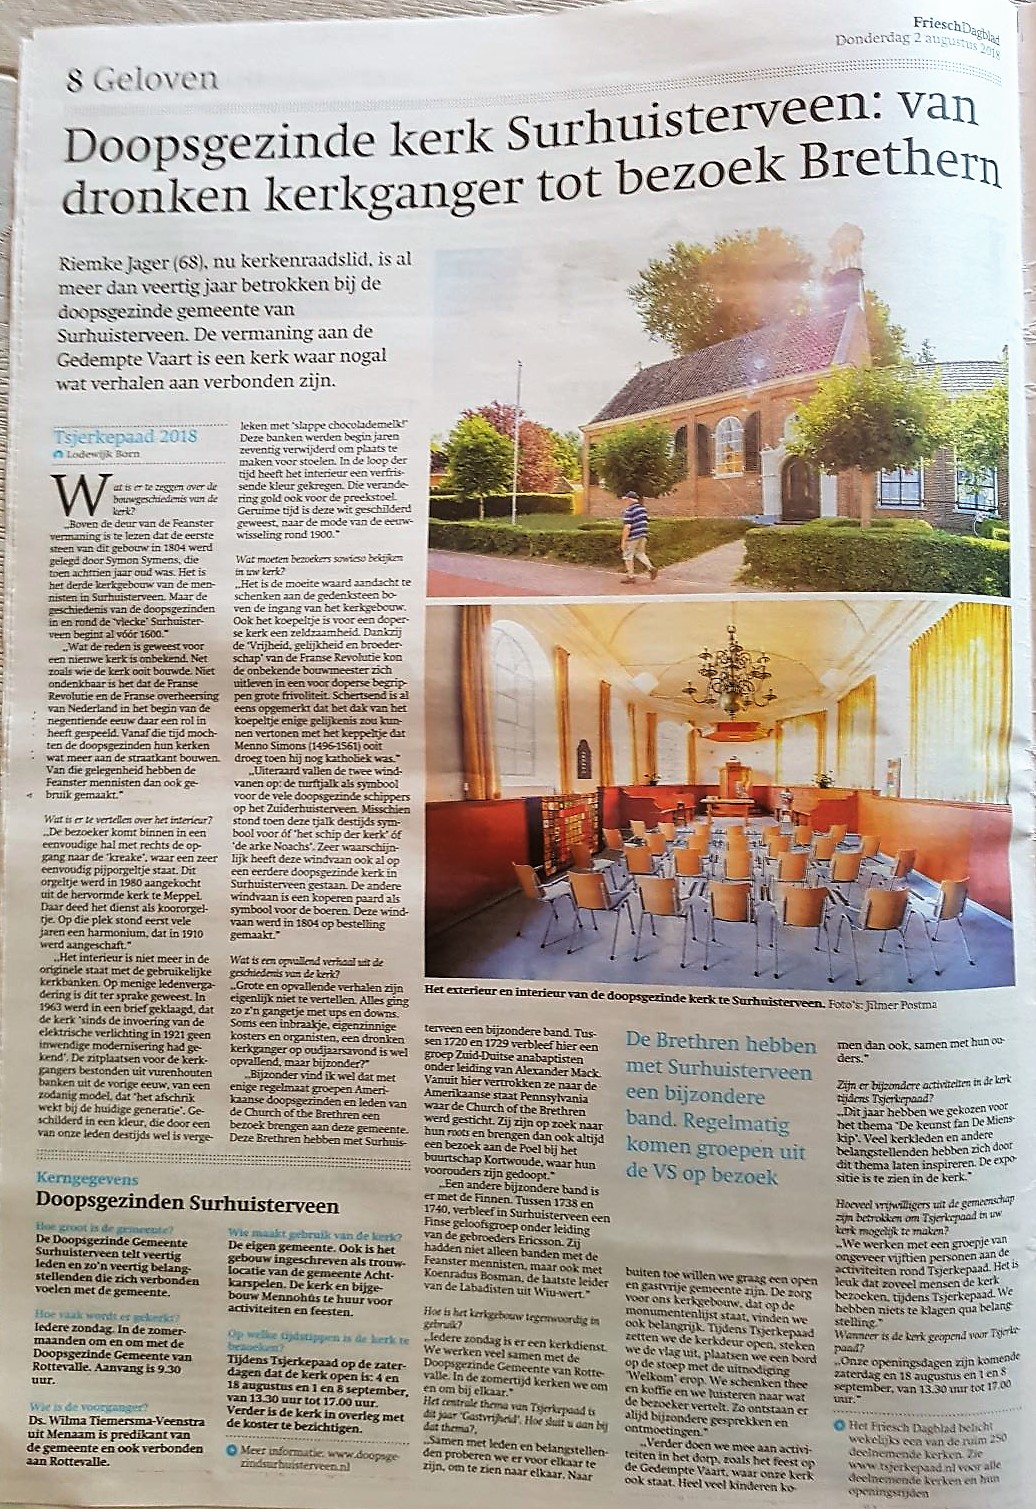 Reportage kerk in Friesch Dagblad